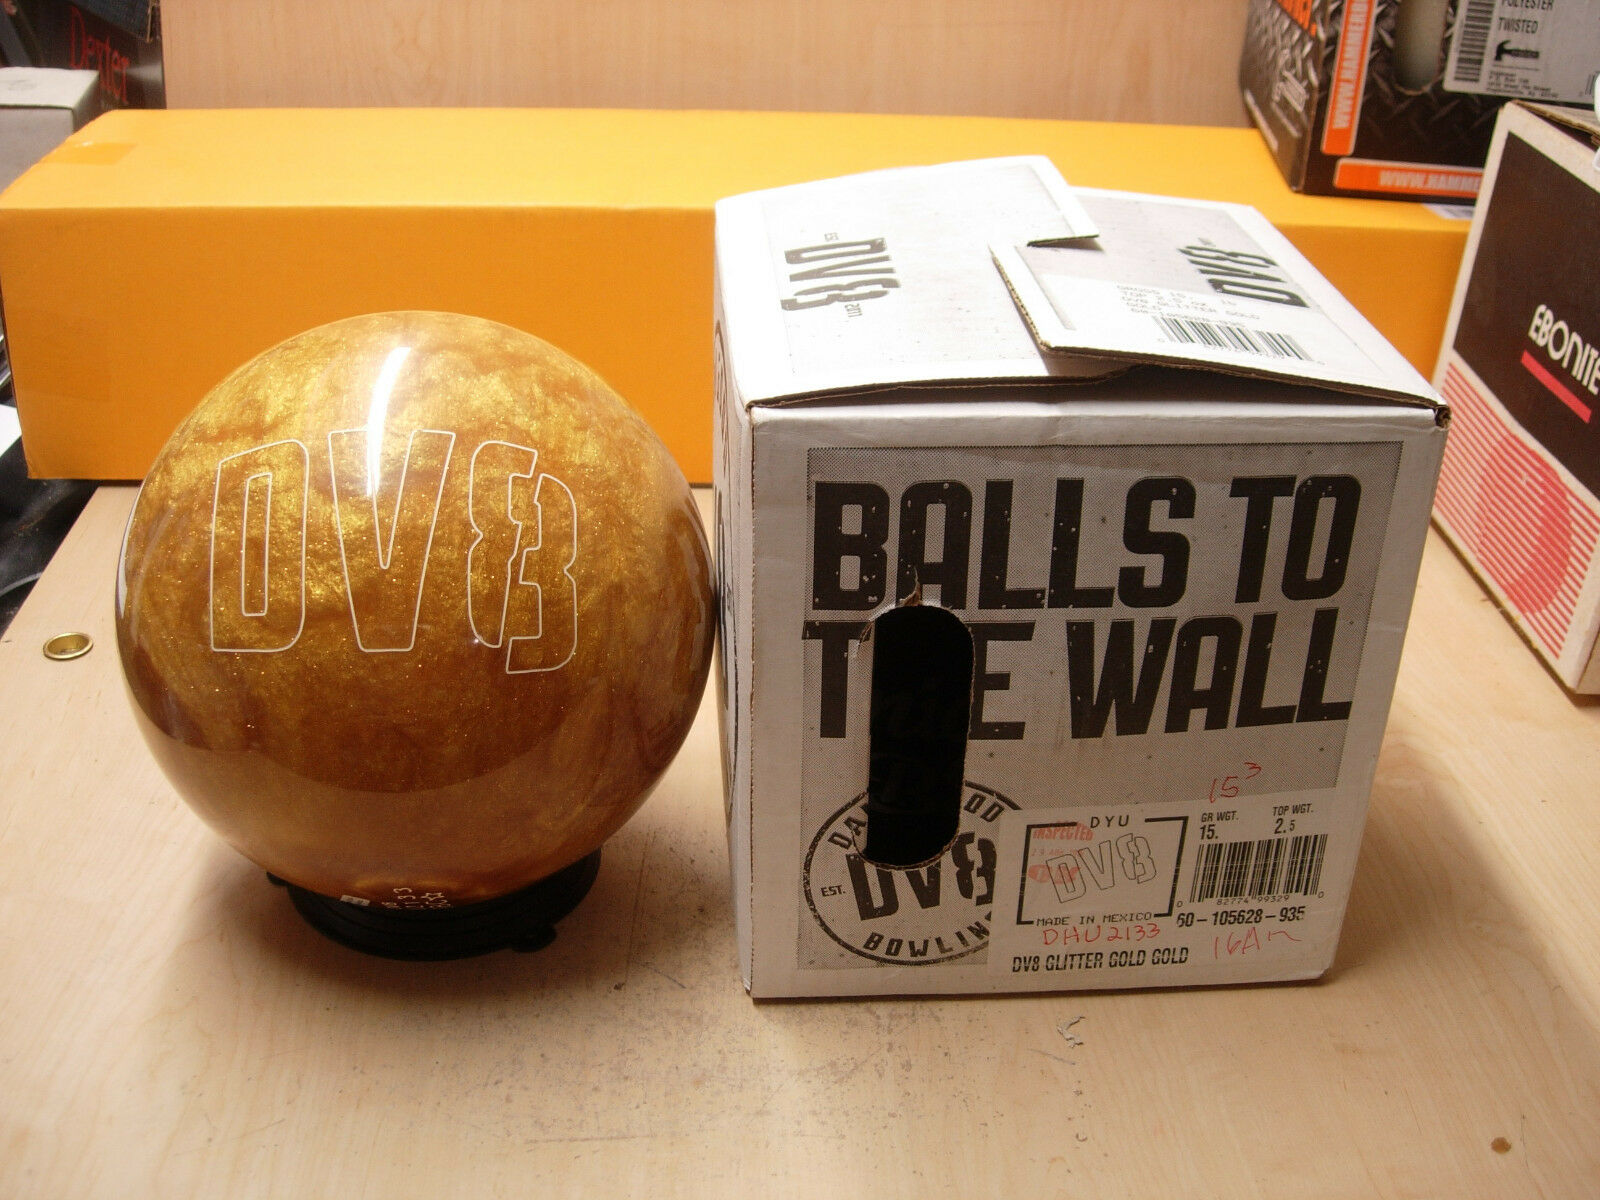 15TW 2.5 DV8 GLITTER gold GLD Polyester Bowling Ball